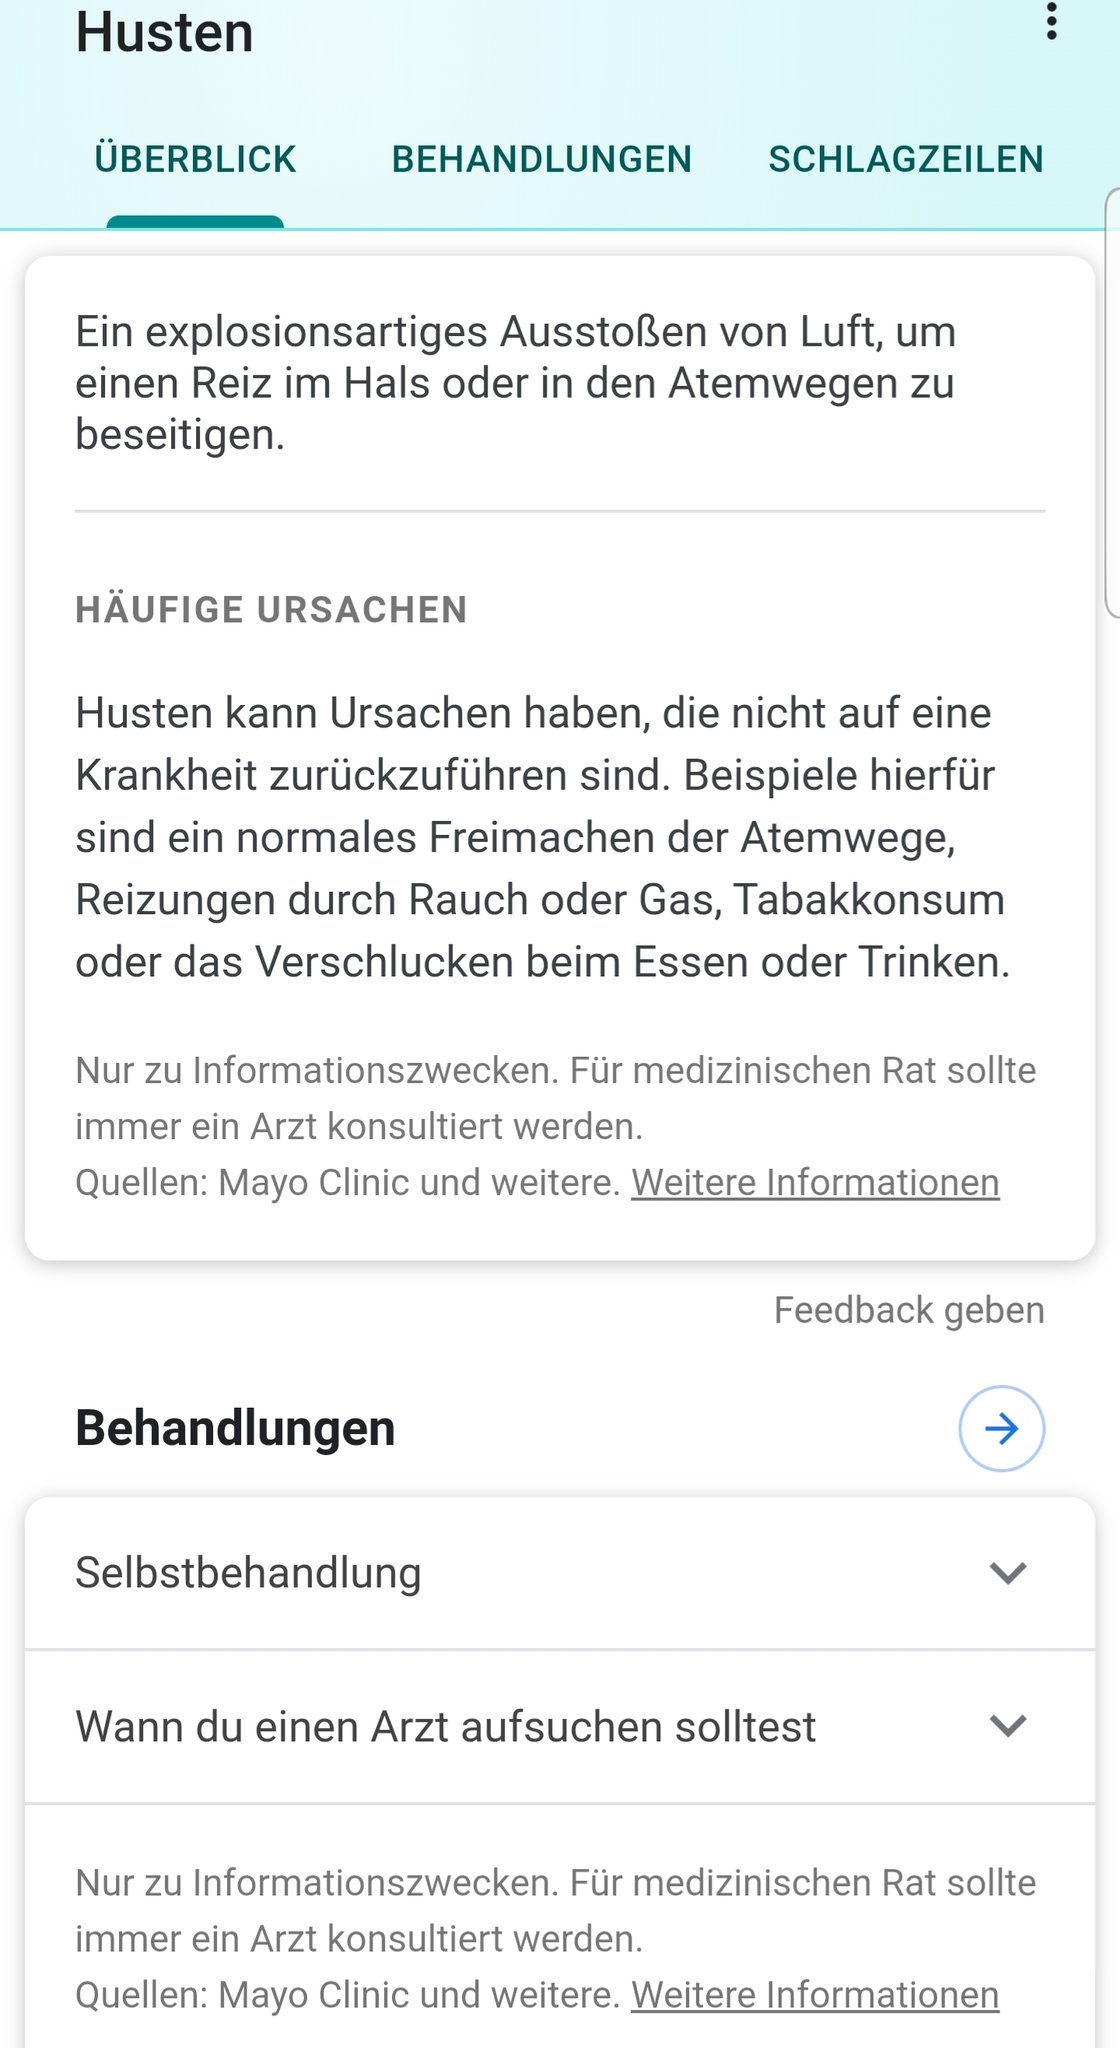 Health Card in German Google Search